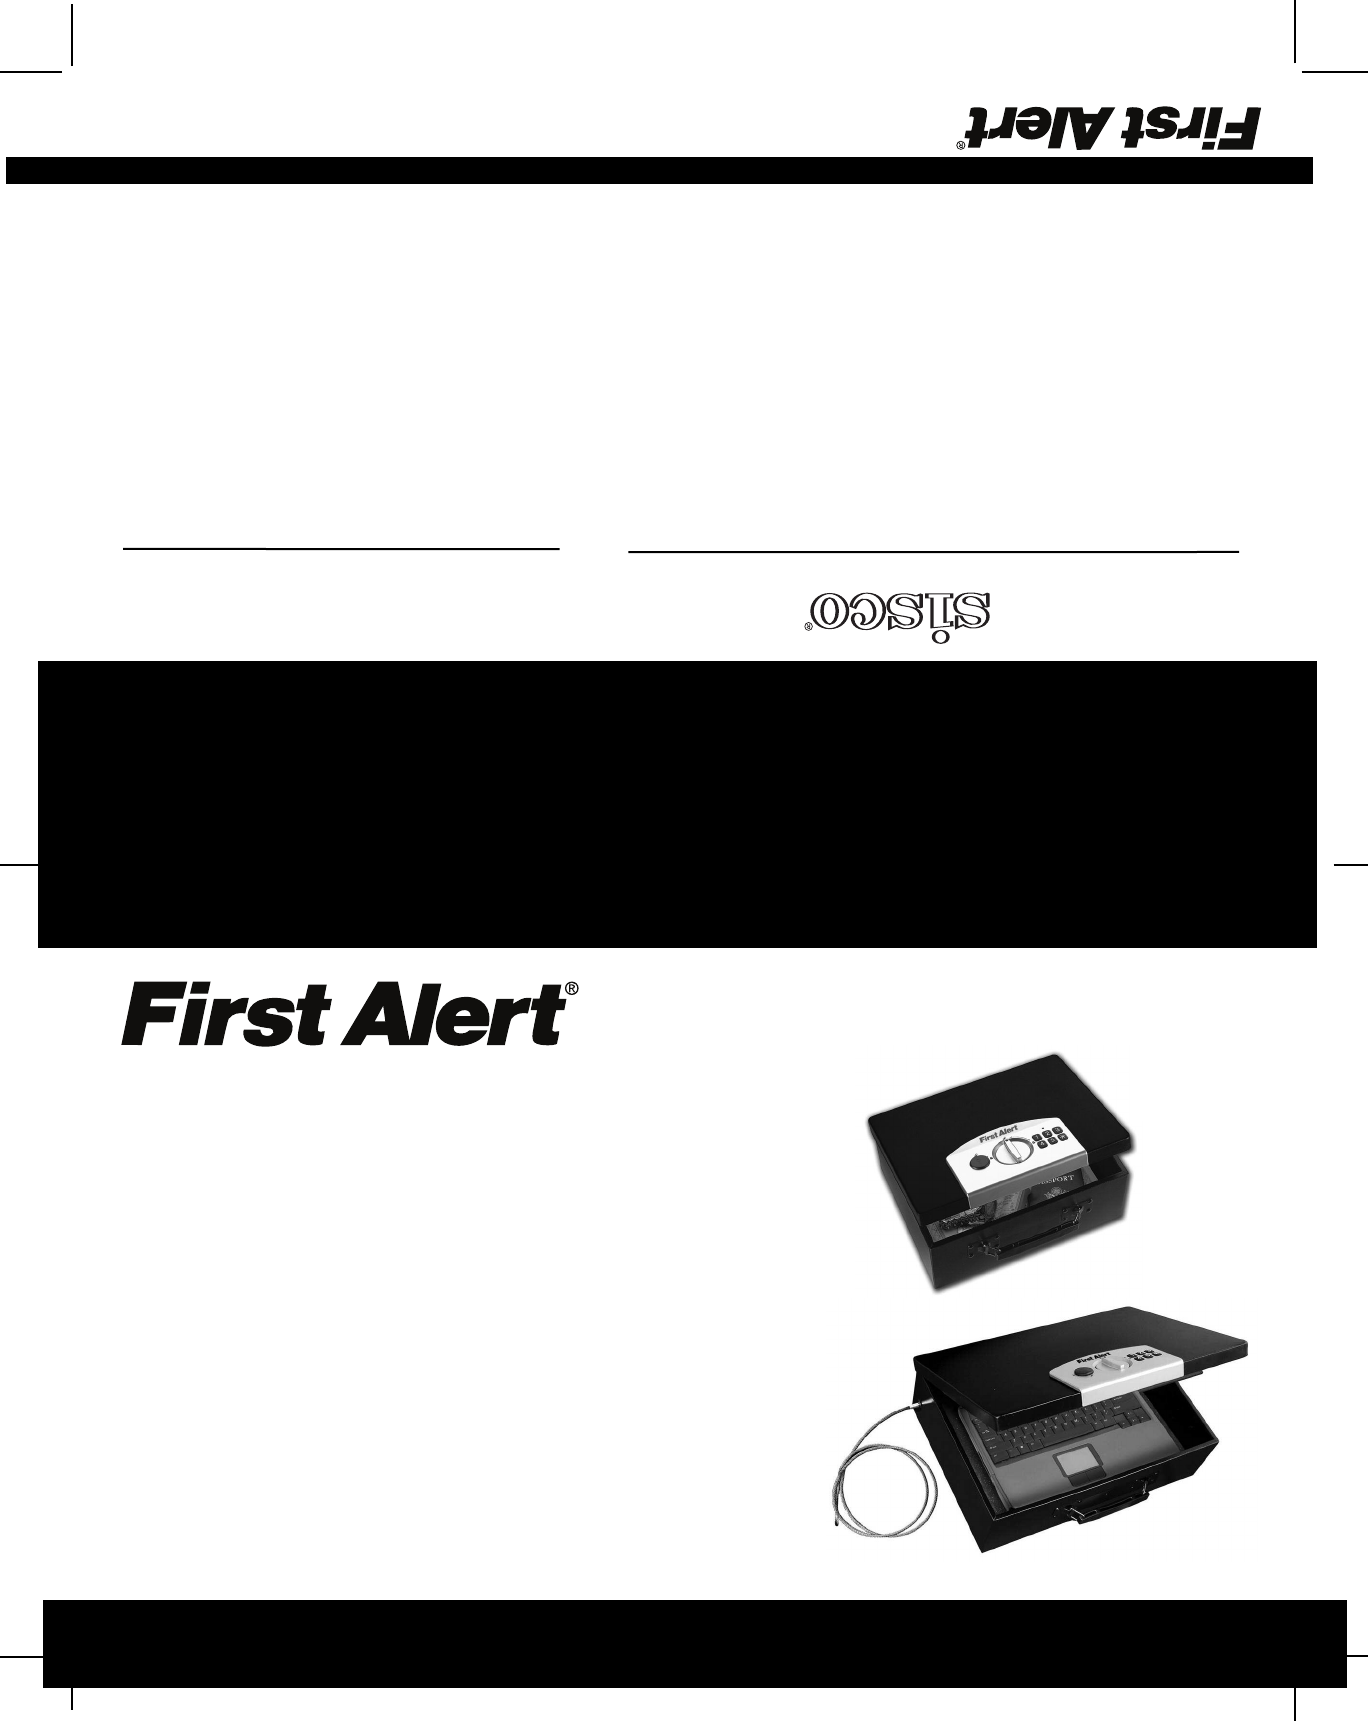 First Alert 3040DF Home Security System User Manual